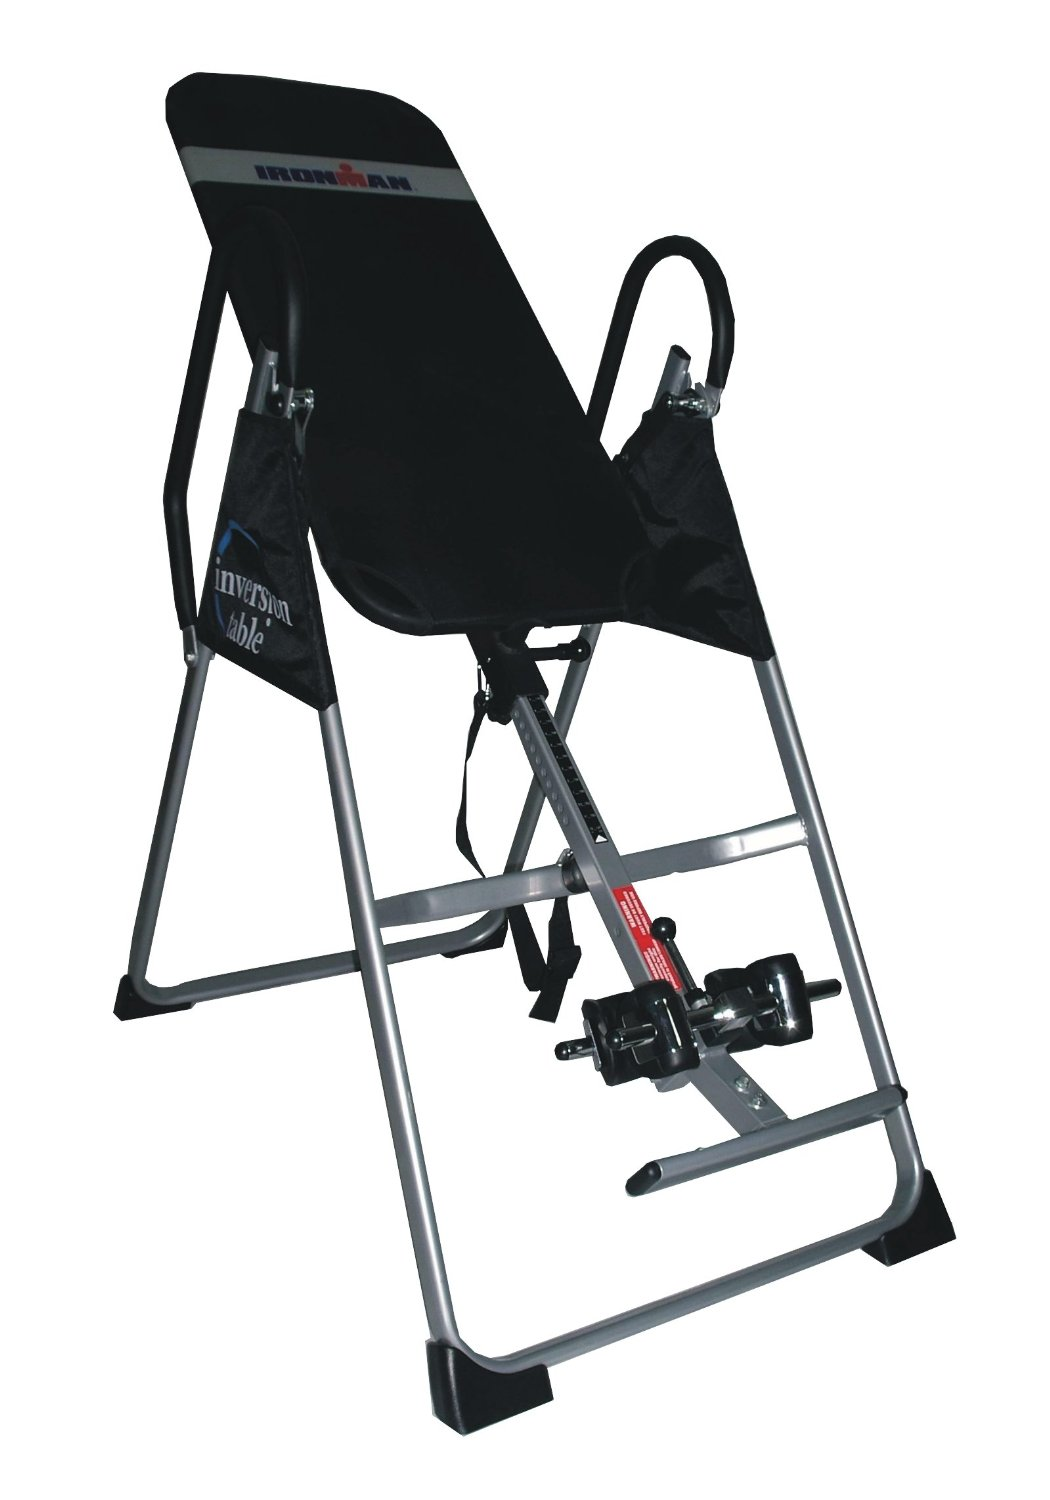 Ironman 1000 Inversion Table Review